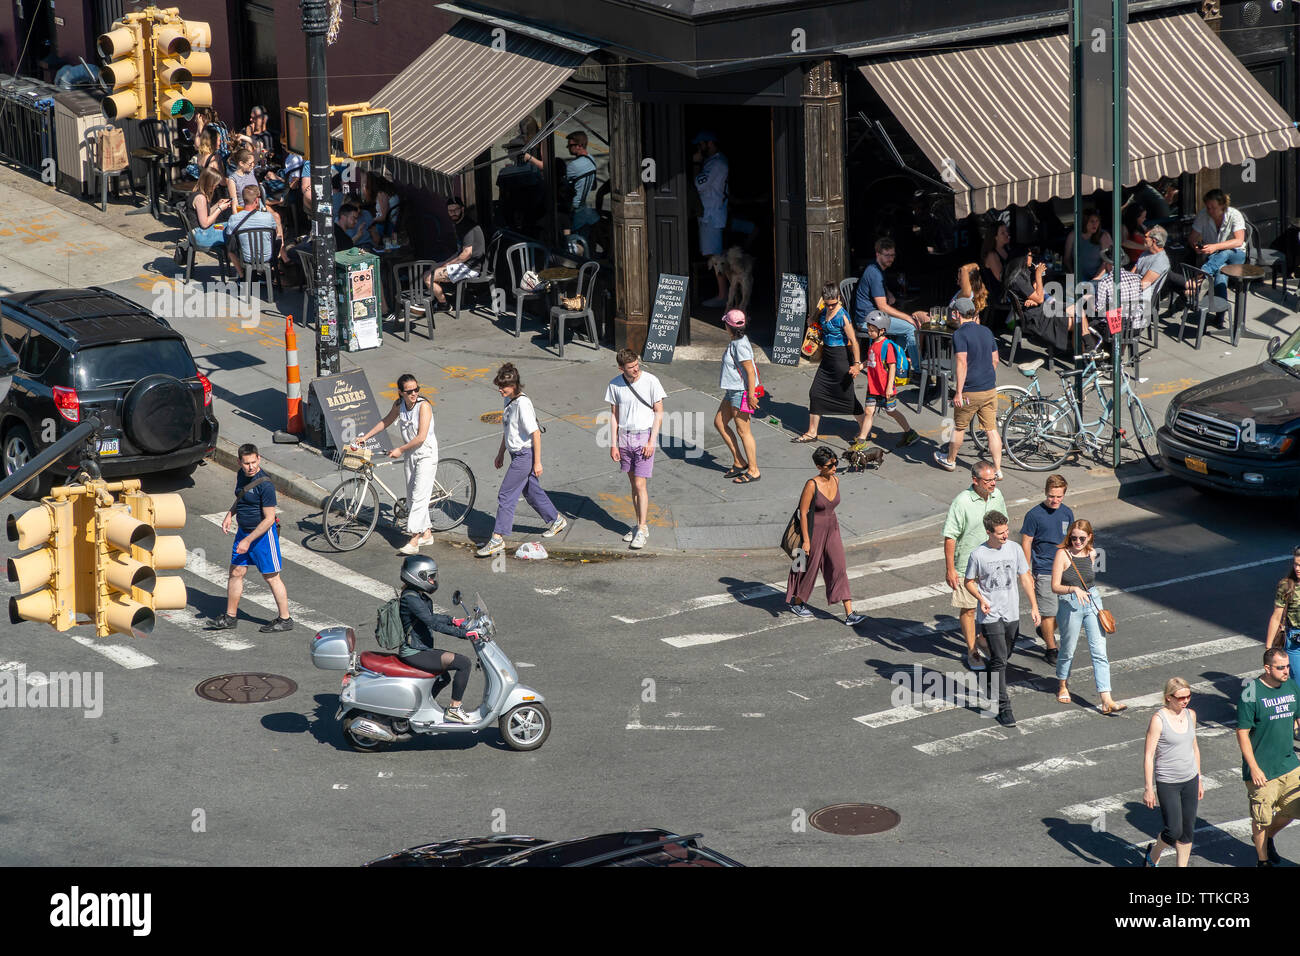 Intersection of Greenpoint and Franklin Avenues in the Greenpoint neighborhood of Brooklyn on Sunday, June 9, 2019. (© Richard B. Levine) - Stock Image